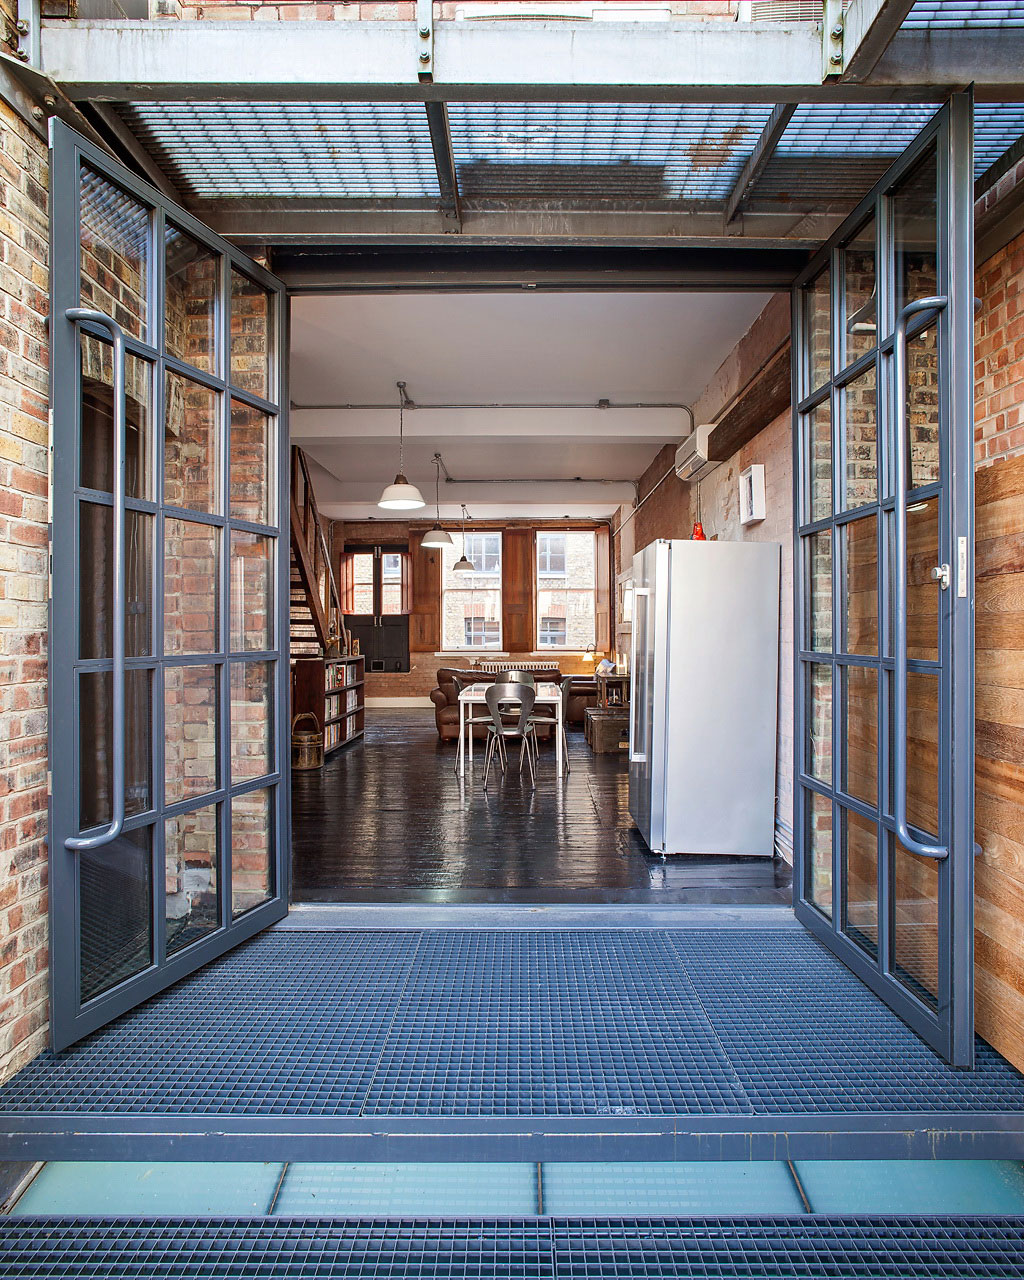 Shoreditch Warehouse Conversion by Chris Dyson Arch (1)